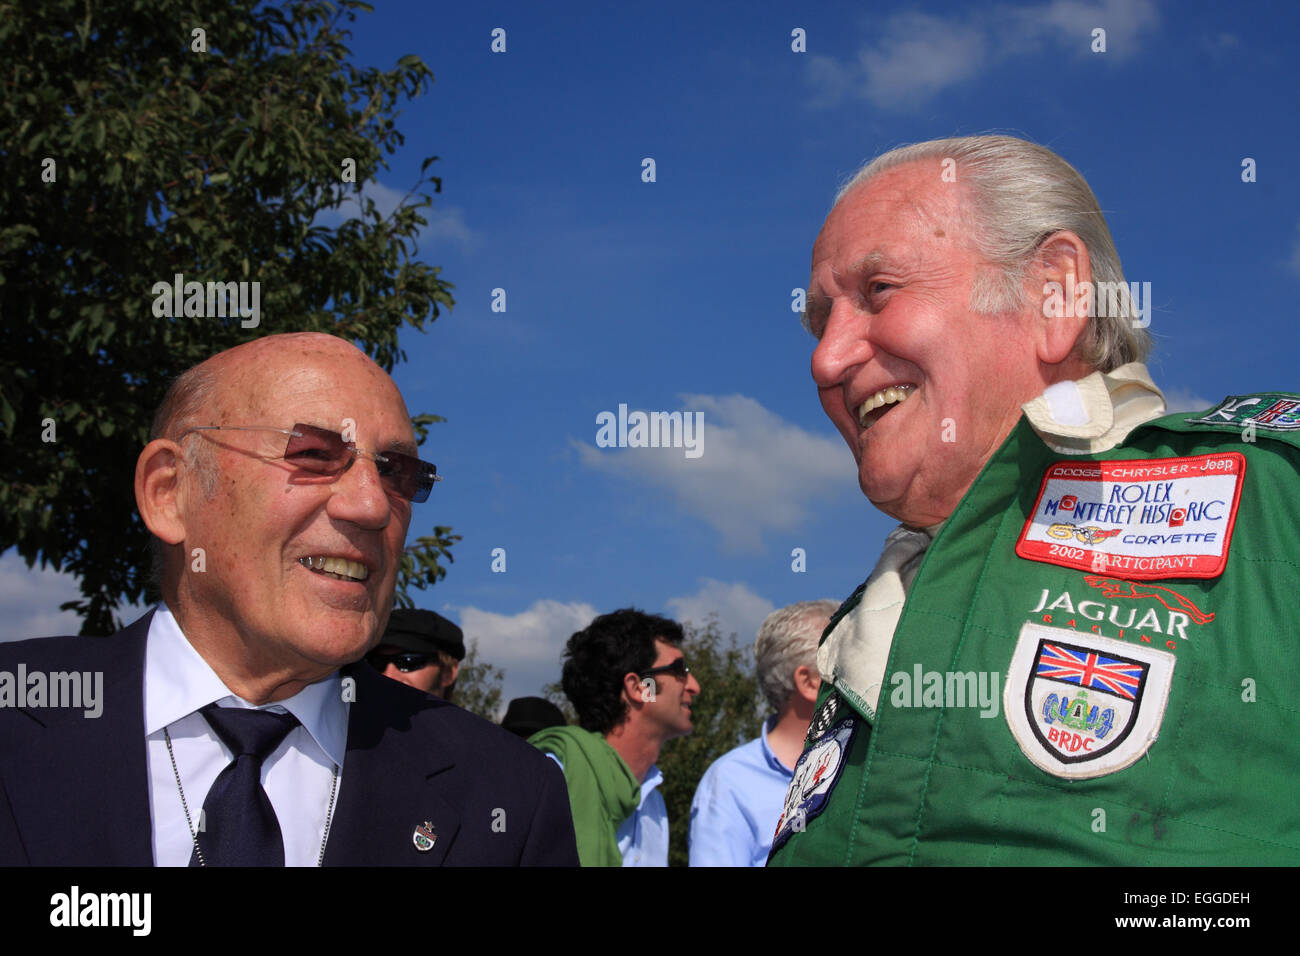 Sir Stirling Moss enjoys a moment with Norman Dewis, former Jaguar works driver and development engineer / Goodwood - Stock Image